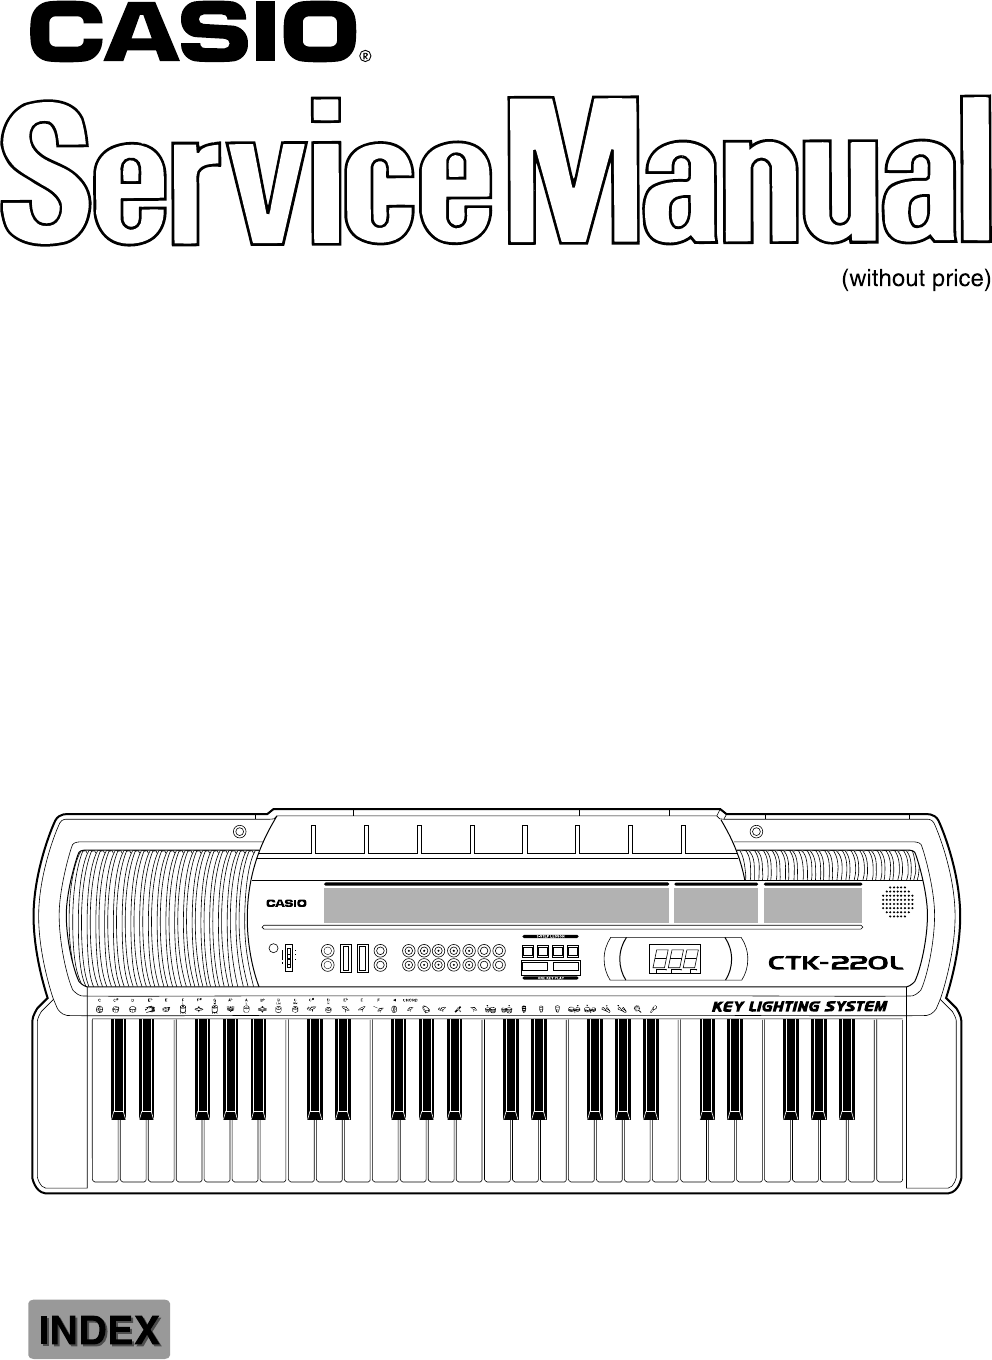 Download Casio Electronic Keyboard CTK-220L manual and